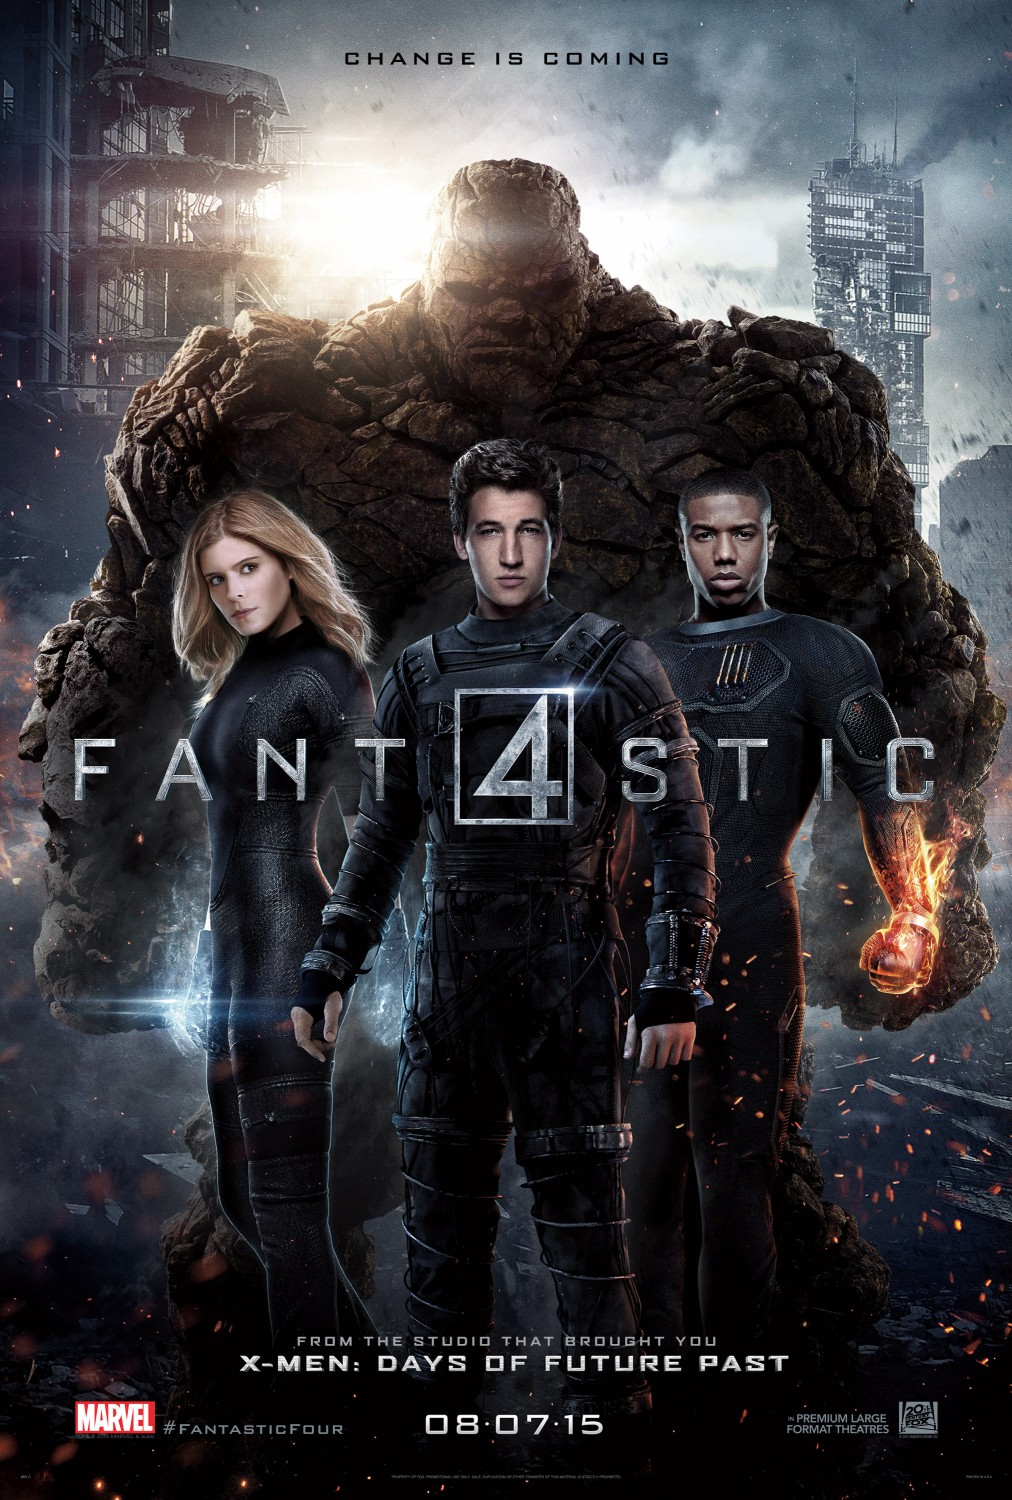 Fantastic Four film review: worth braving the storm?